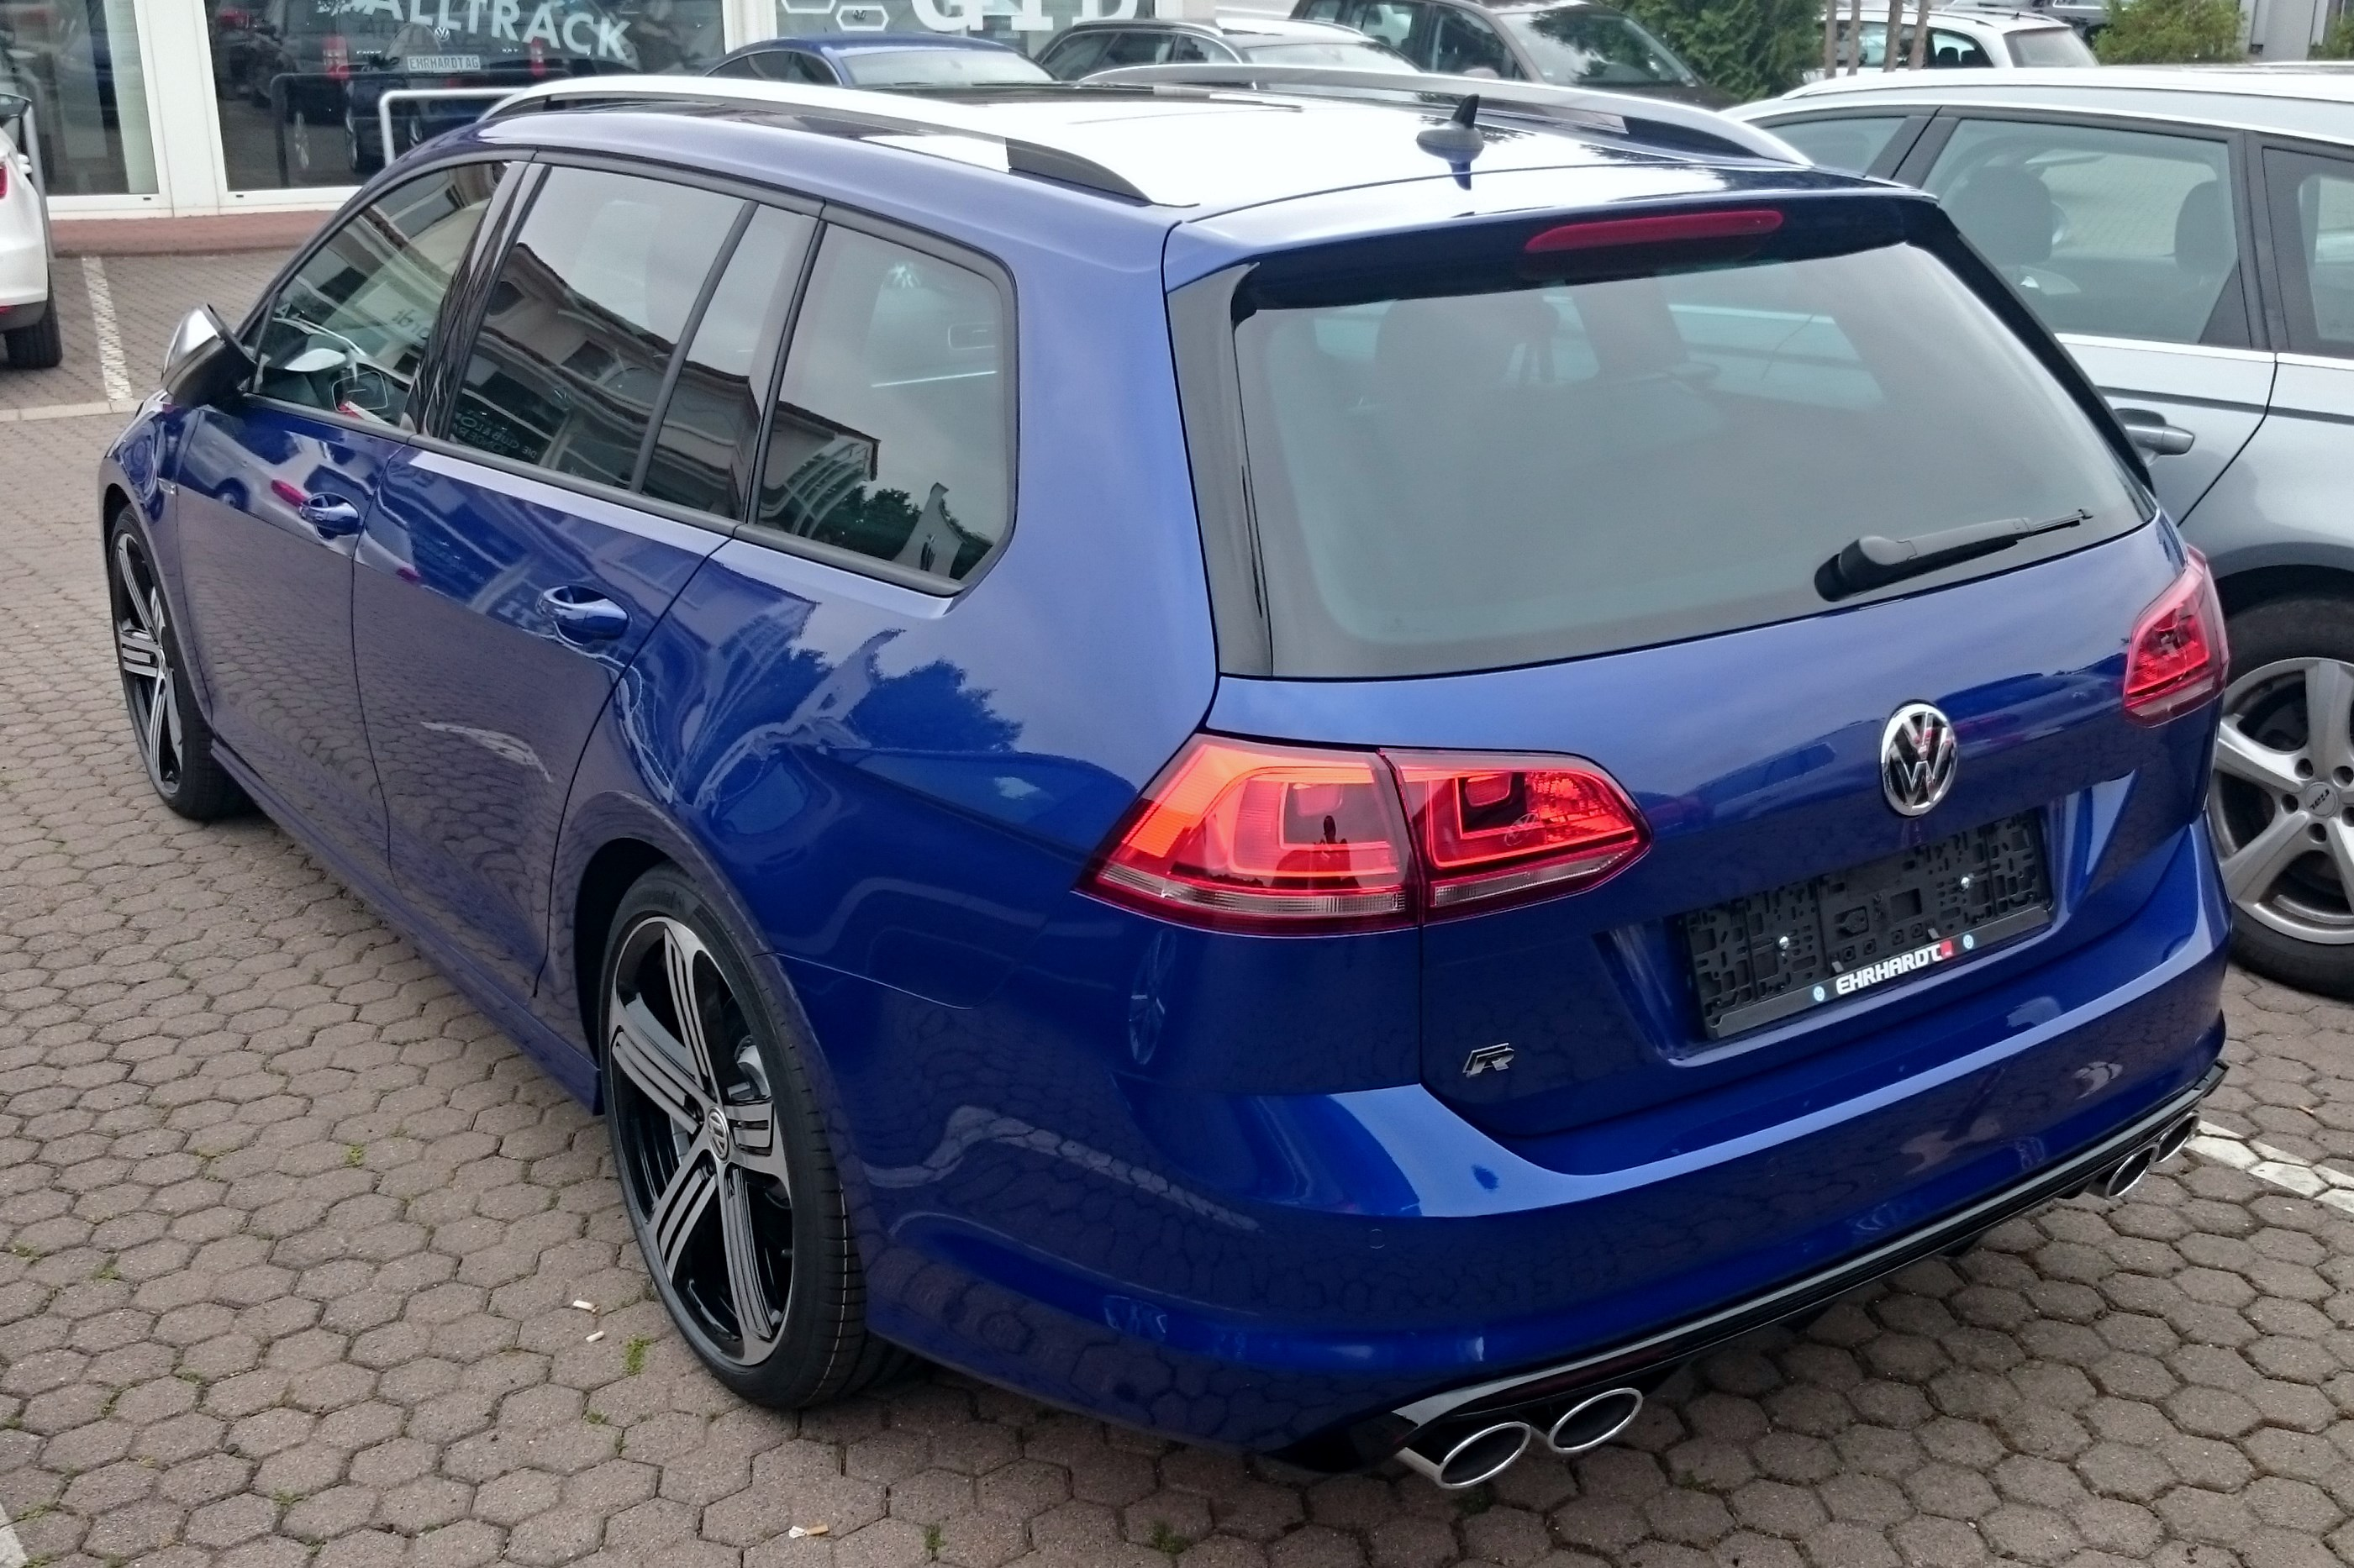 file vw golf vii r variant 4motion 2 0 tsi dsg heck jpg wikimedia commons. Black Bedroom Furniture Sets. Home Design Ideas